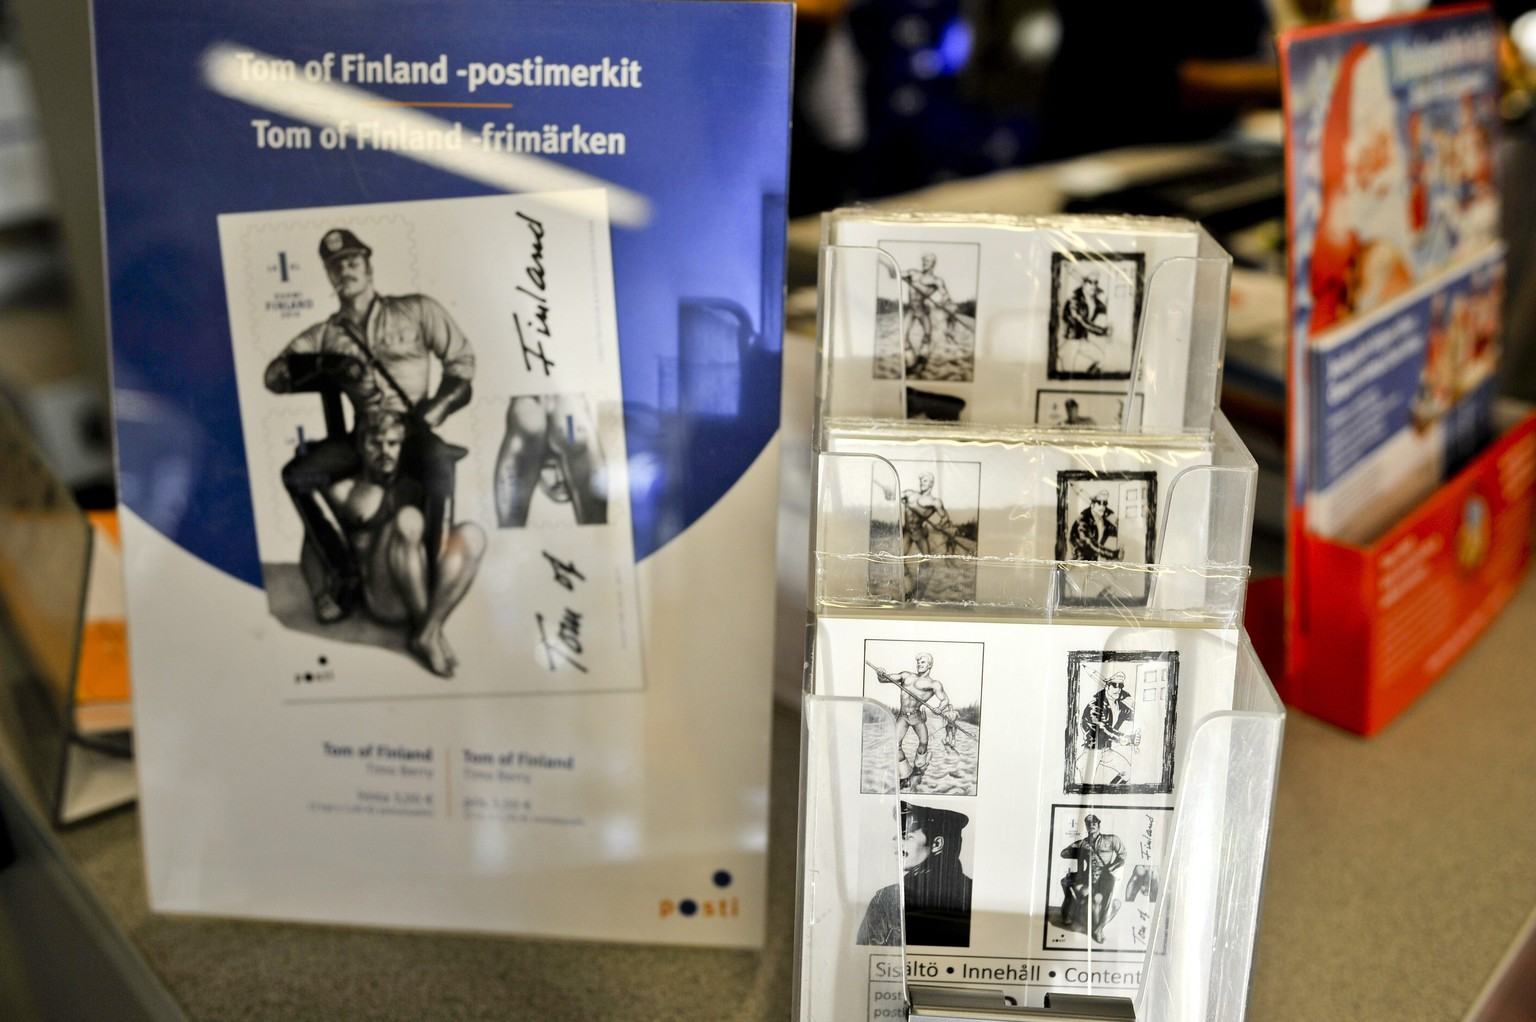 A set of homoerotic Finnish stamps featuring images by gay icon and artist Tom of Finland are on sale at a post office in Helsinki on September 8, 2014. Tom of Finland, whose real name was Touko Laaksonen (1920-1991), is venerated internationally in gay circles for his explicit sexual drawings, which he created at a time when homosexuality was still taboo in the West.   AFP PHOTO / LEHTIKUVA / JARI LAM   *** FINLAND OUT ***     RESTRICTED TO EDITORIAL USE - MANDATORY MENTION OF THE ARTIST UPON PUBLICATION, TO ILLUSTRATE THE EVENT AS SPECIFIED IN THE CAPTION